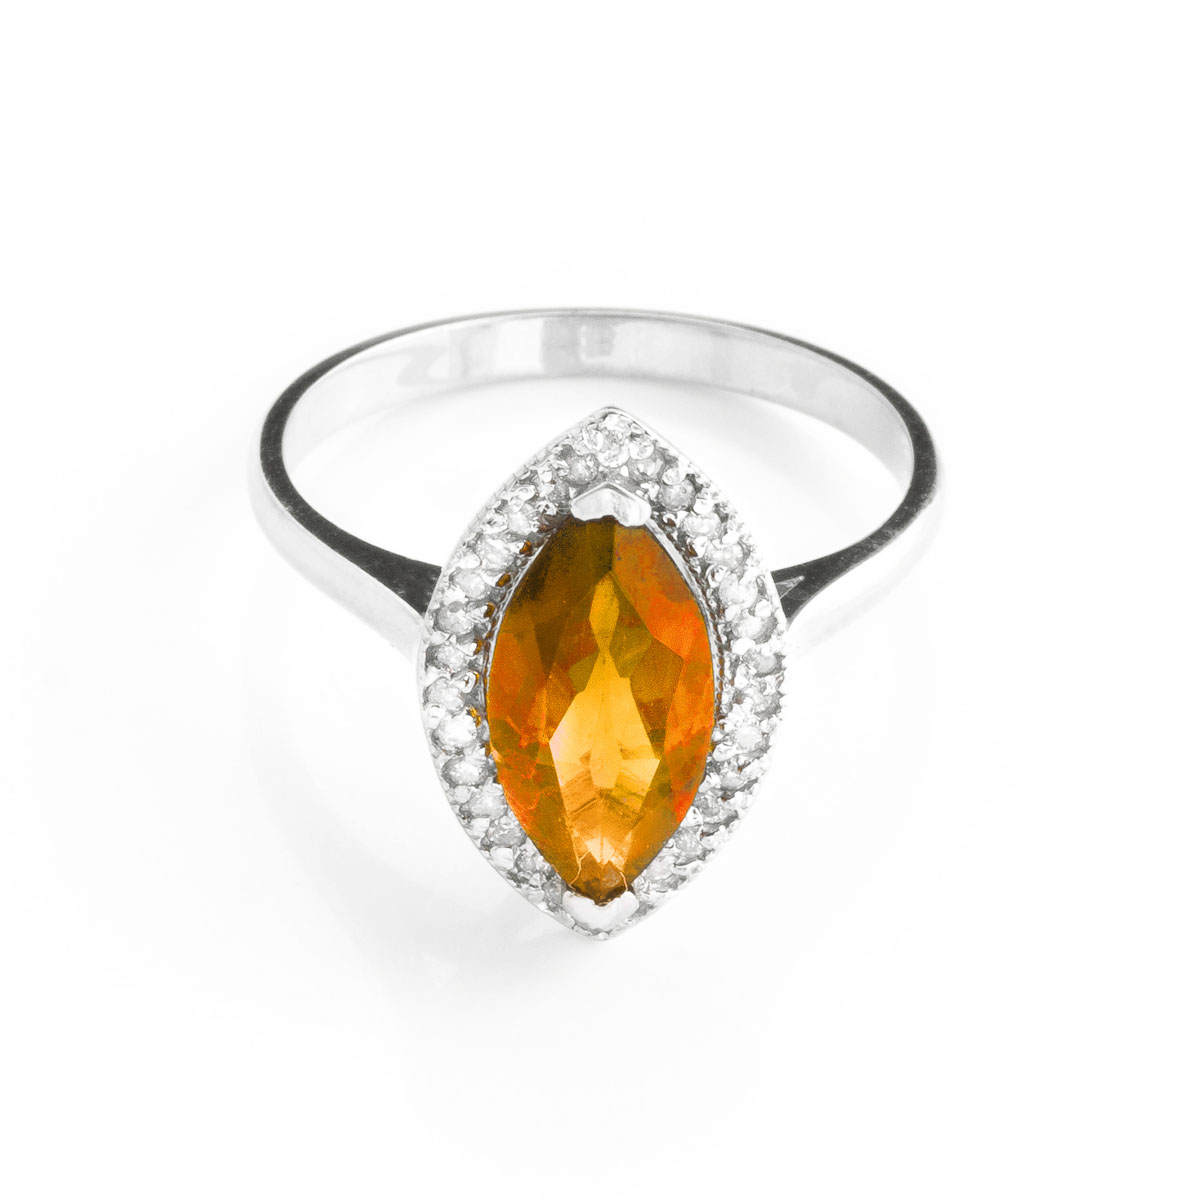 Citrine Halo Ring 1.8 ctw in 9ct White Gold